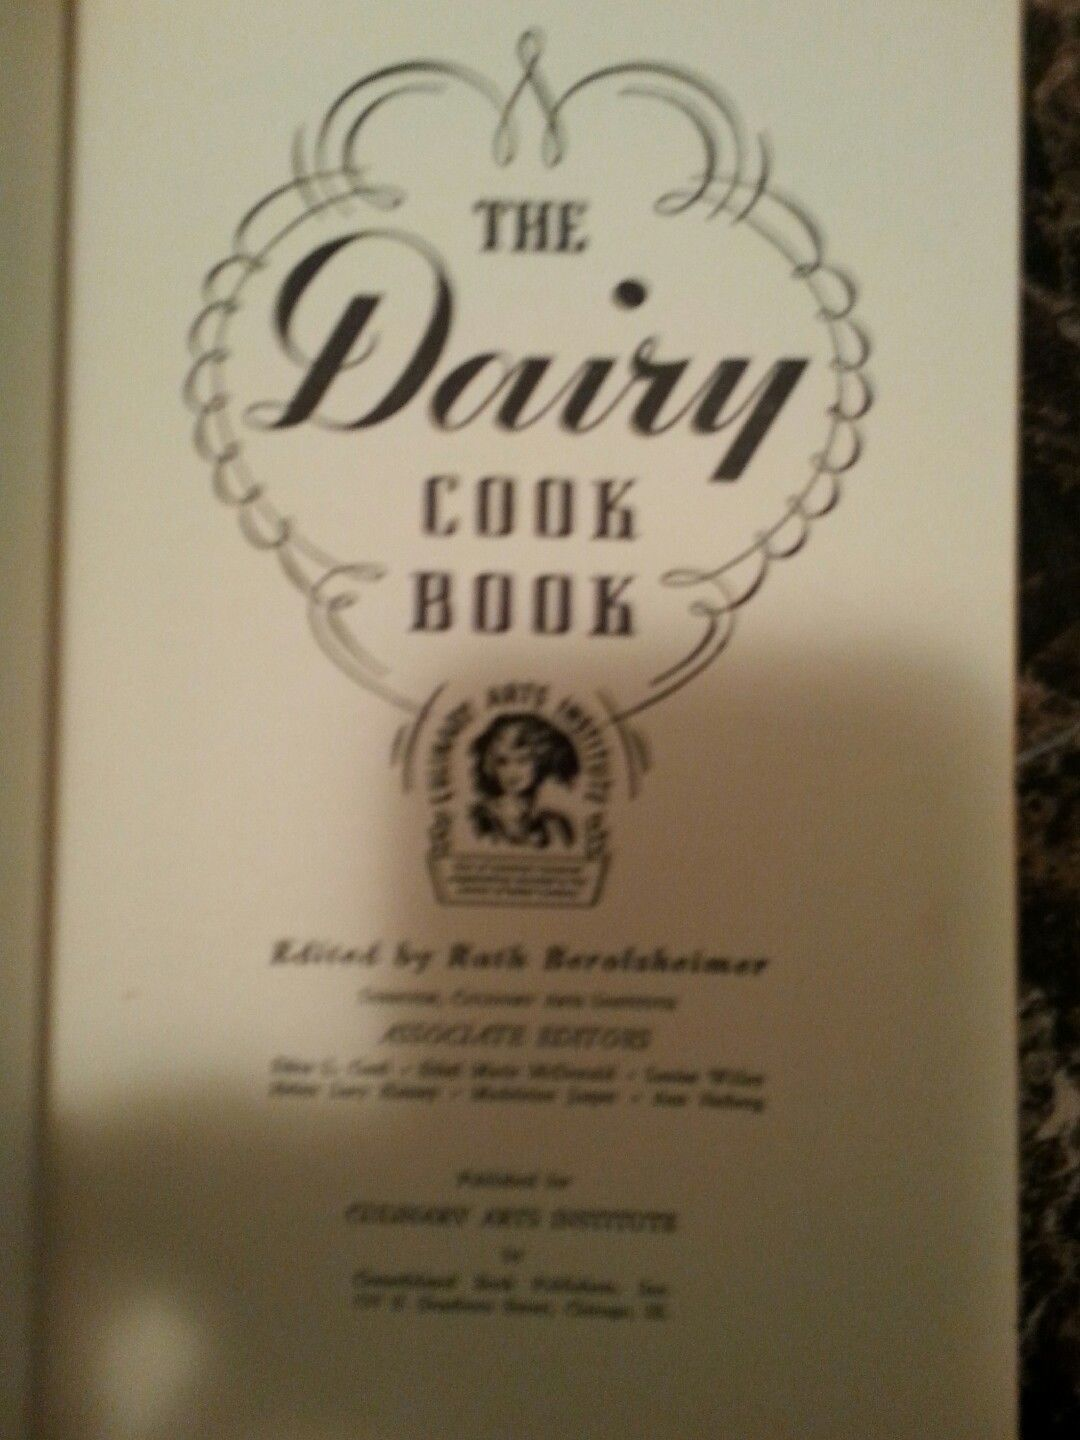 DAIRY COOKBOOK FROM THE CULINARY ARTS INSTITUTE 1941